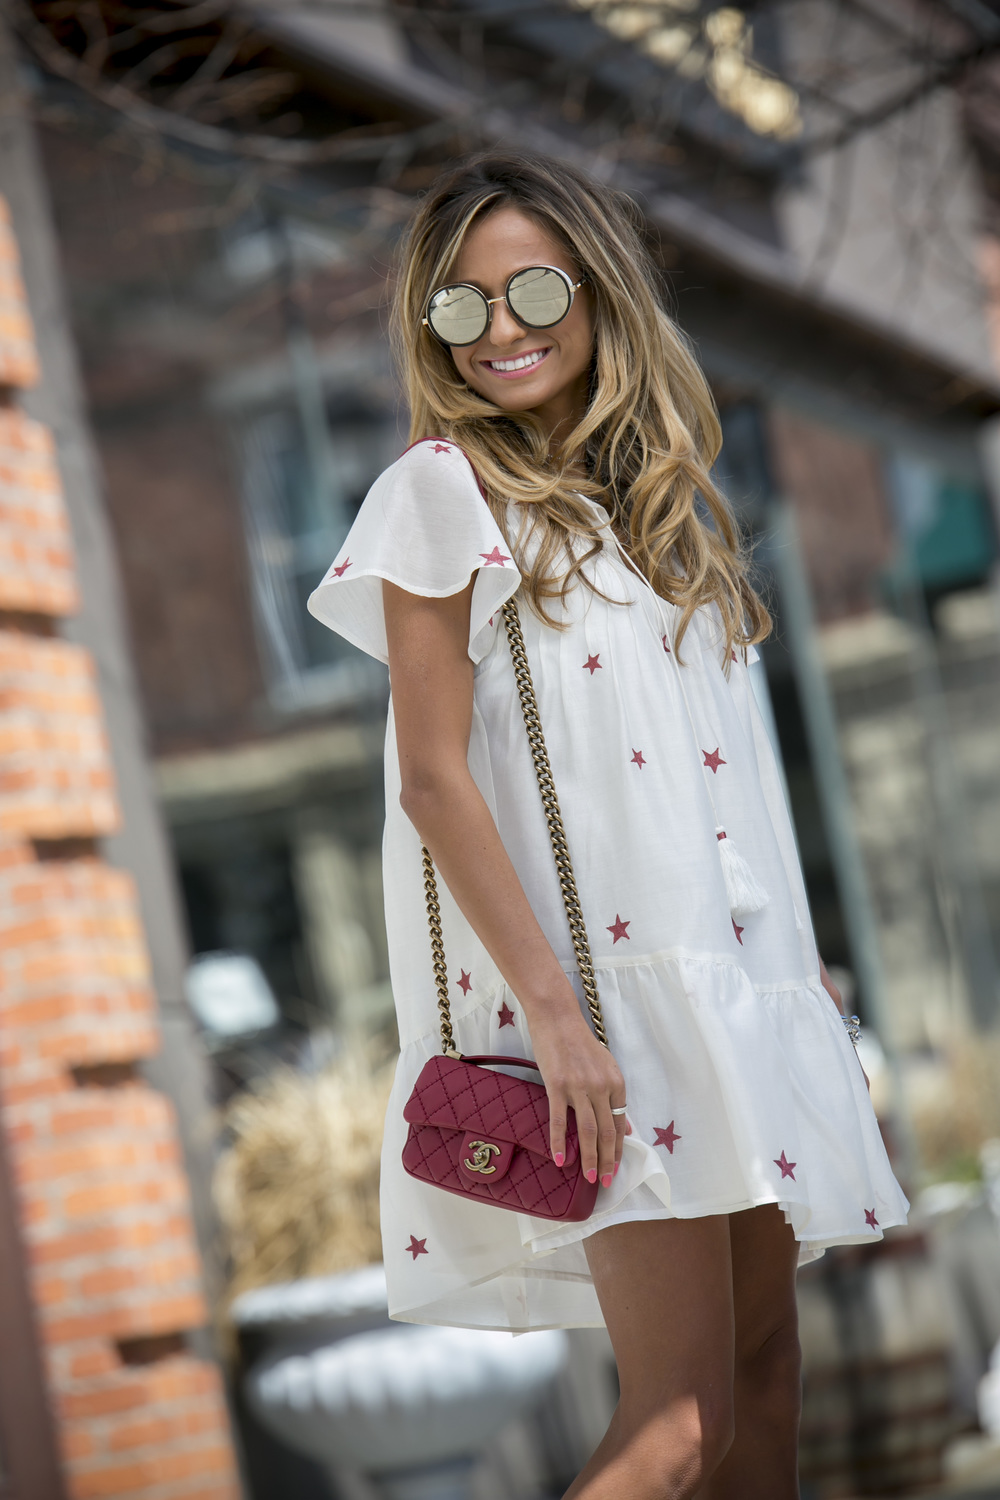 Dress: Tularosa |Booties:Saint Laurent(sold out)|Sunnies: Jimmy Choo     Dino Petrocelli Photography